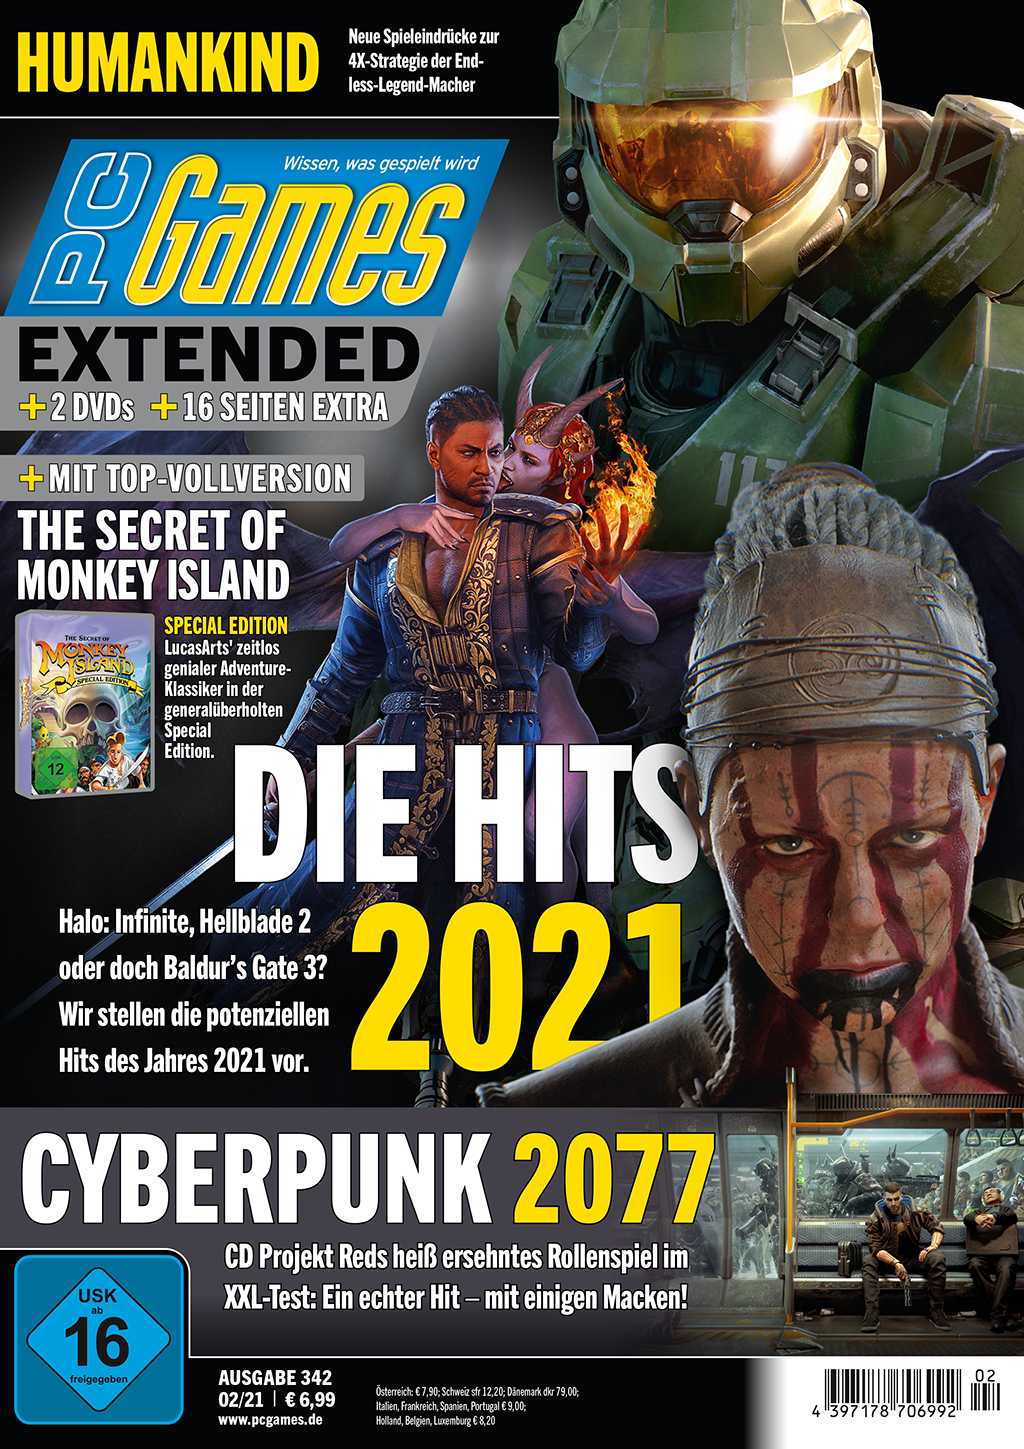 PC Games 02/21 with cover story about the hits in 2021